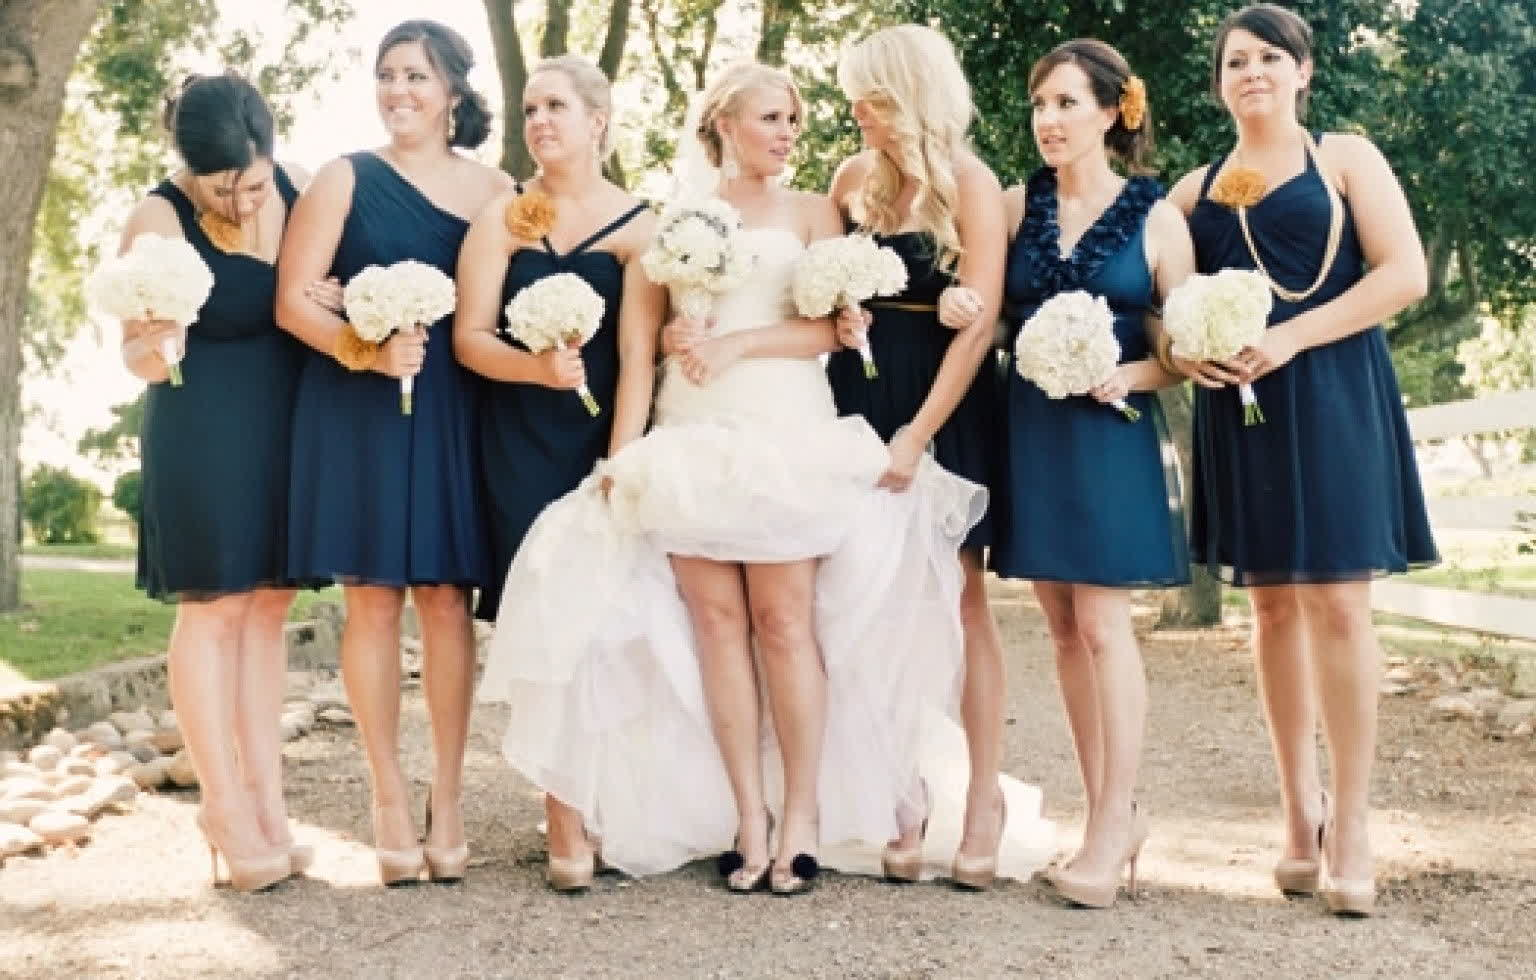 Bridal wedding on vogue blush wedding dress bridesmaids in navy blush wedding dress bridesmaids in navy ombrellifo Images